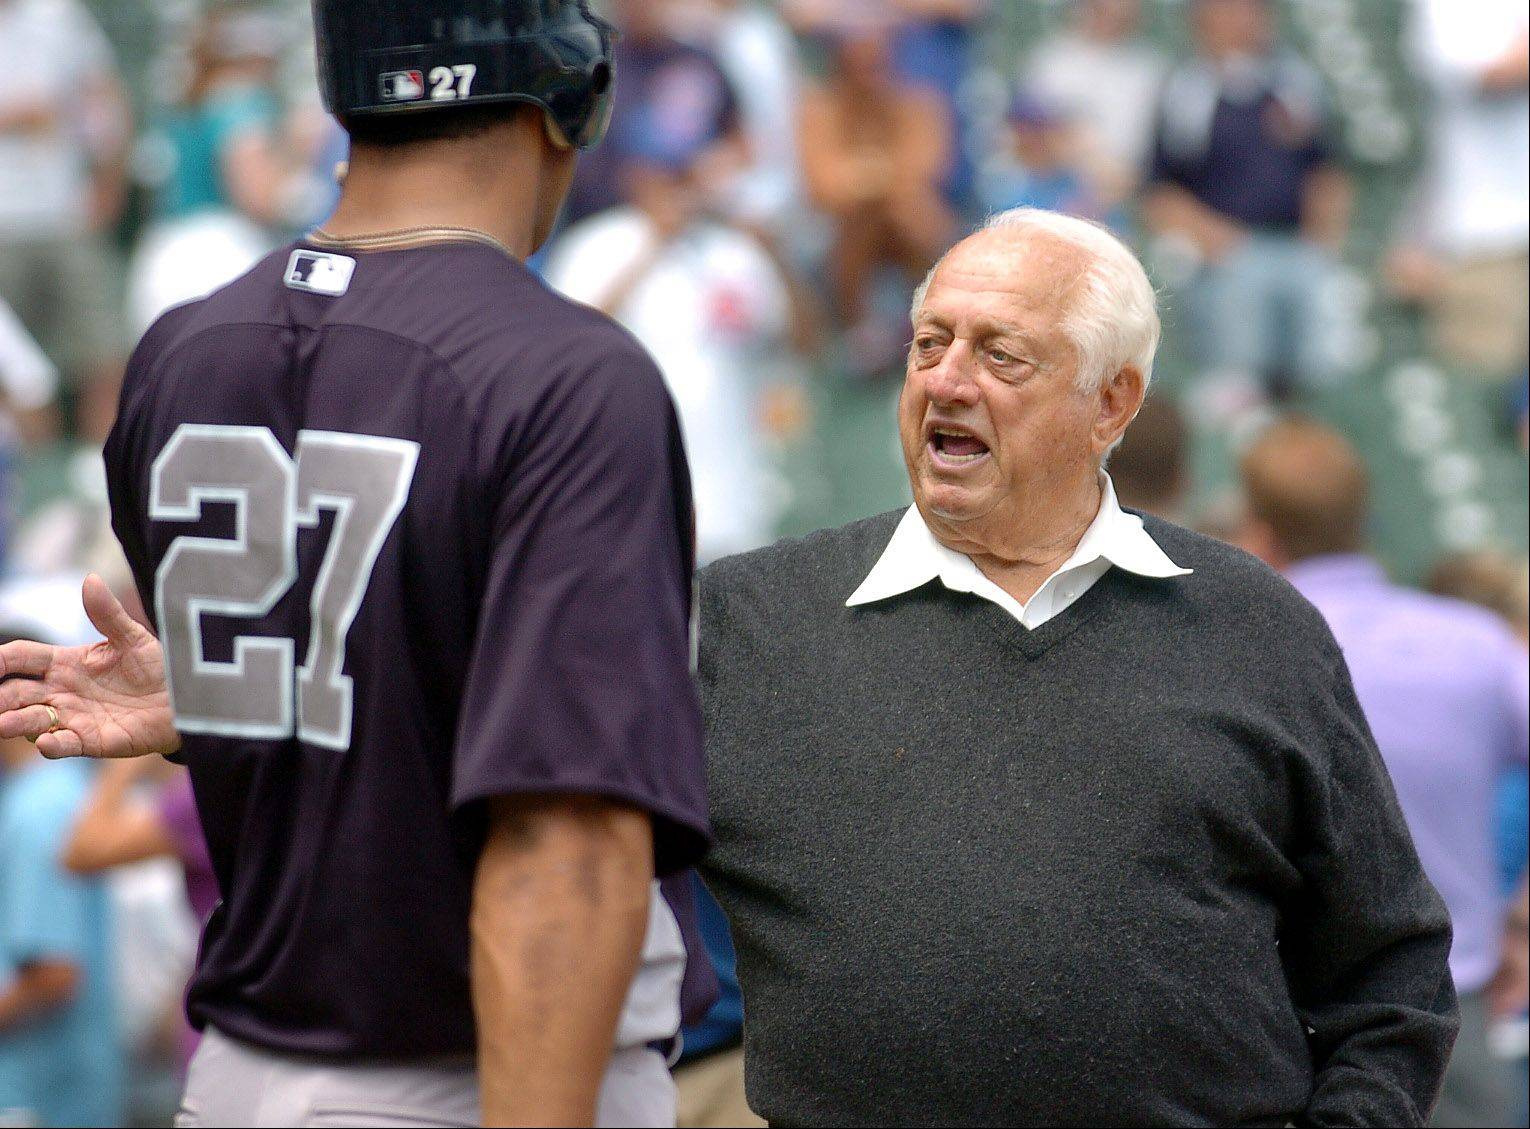 Tommy Lasorda chats with Chris Dickerson of the Yankees during batting practice before Friday's game.